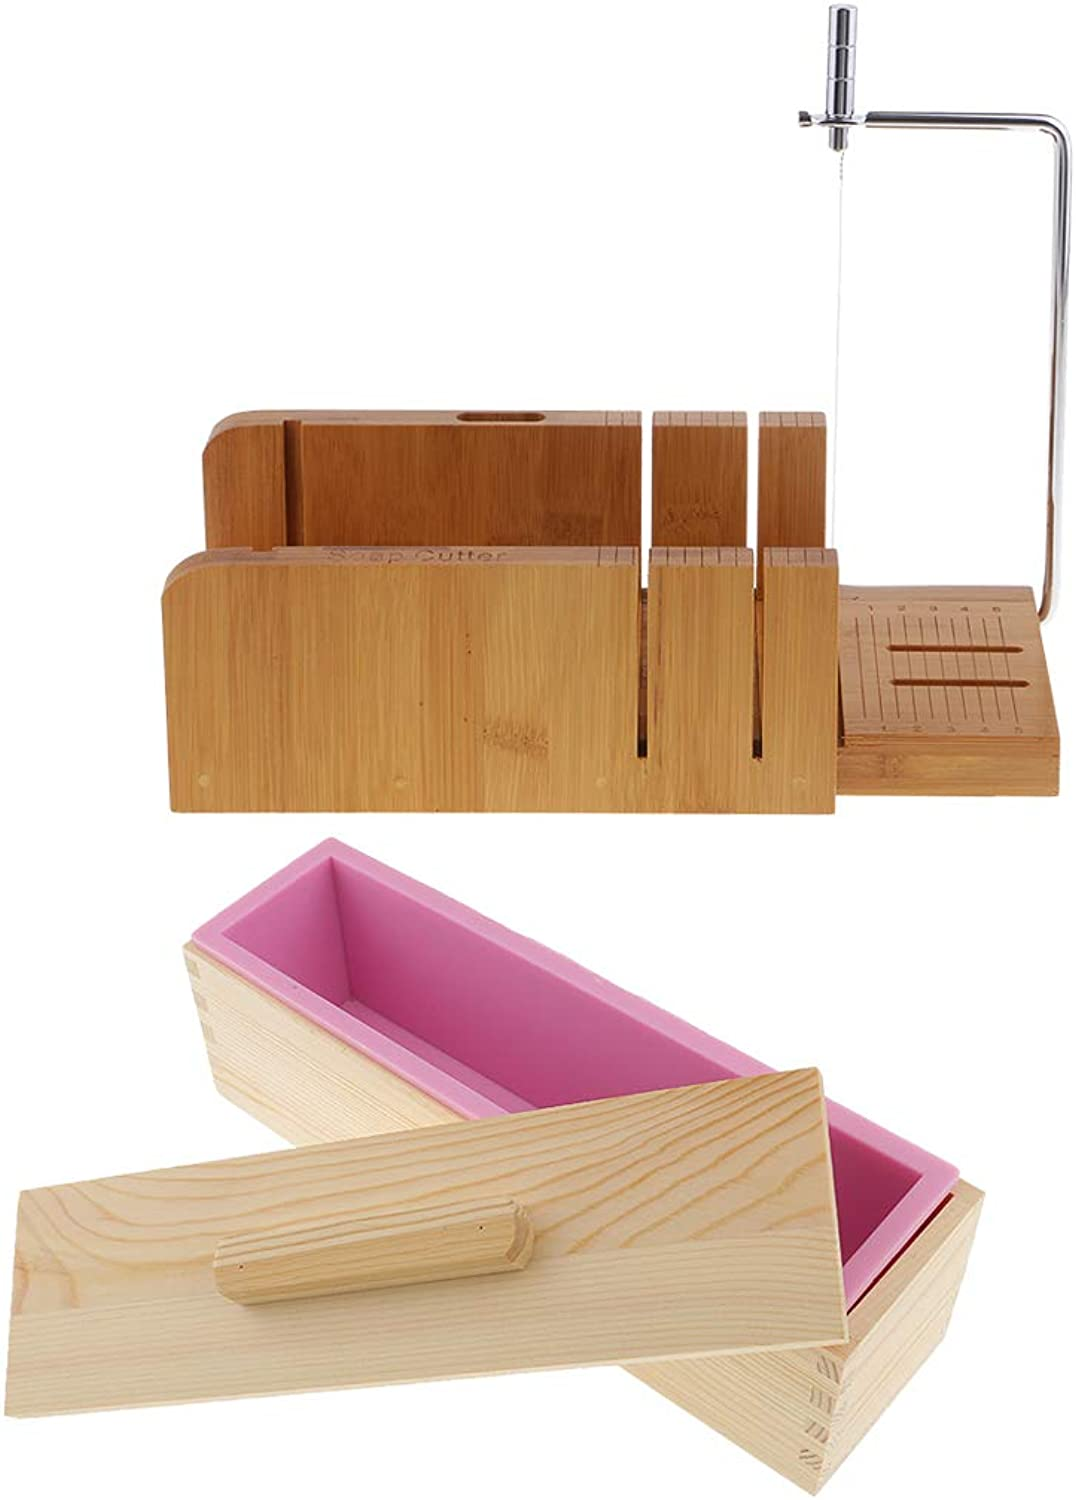 F Fityle Wooden Box, Silicone Soap Loaf Mold and Soap Cutter Beveler & Wire Slicer, for DIY Soap Cake Chocolate Making Tools